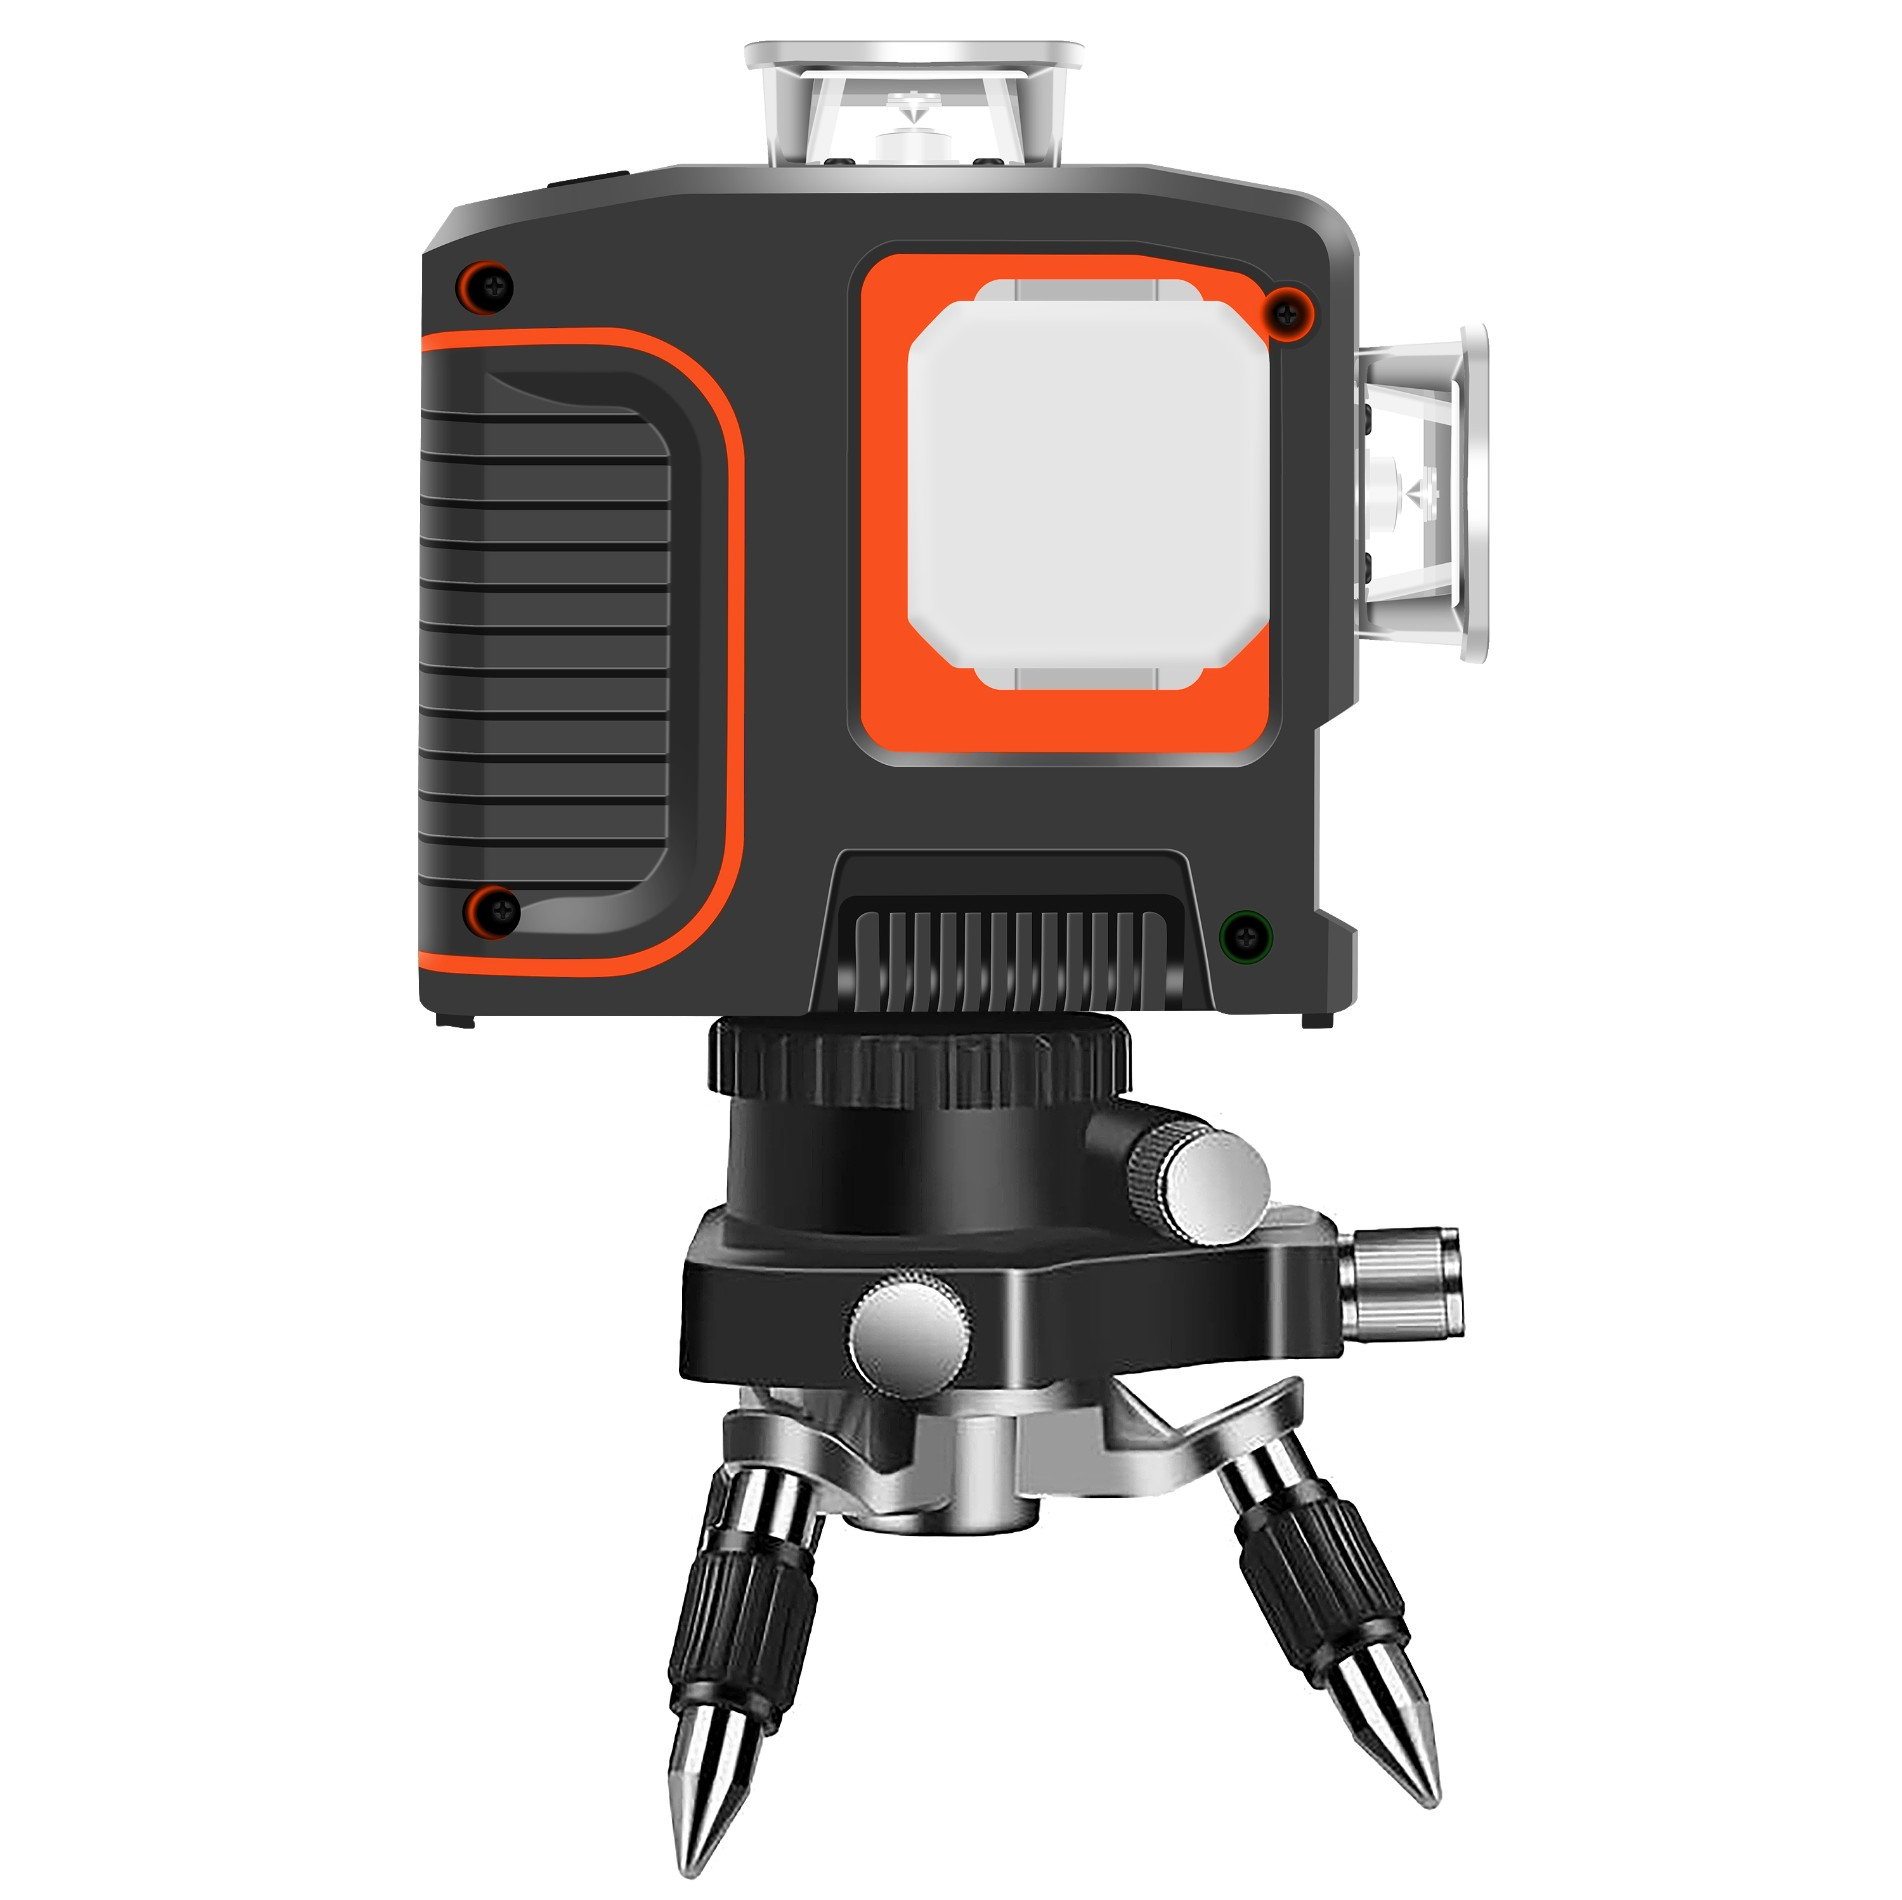 3d Laser Level 12 Lines Cross Red Beam With 360 Degree Manufacturers, 3d Laser Level 12 Lines Cross Red Beam With 360 Degree Factory, Supply 3d Laser Level 12 Lines Cross Red Beam With 360 Degree